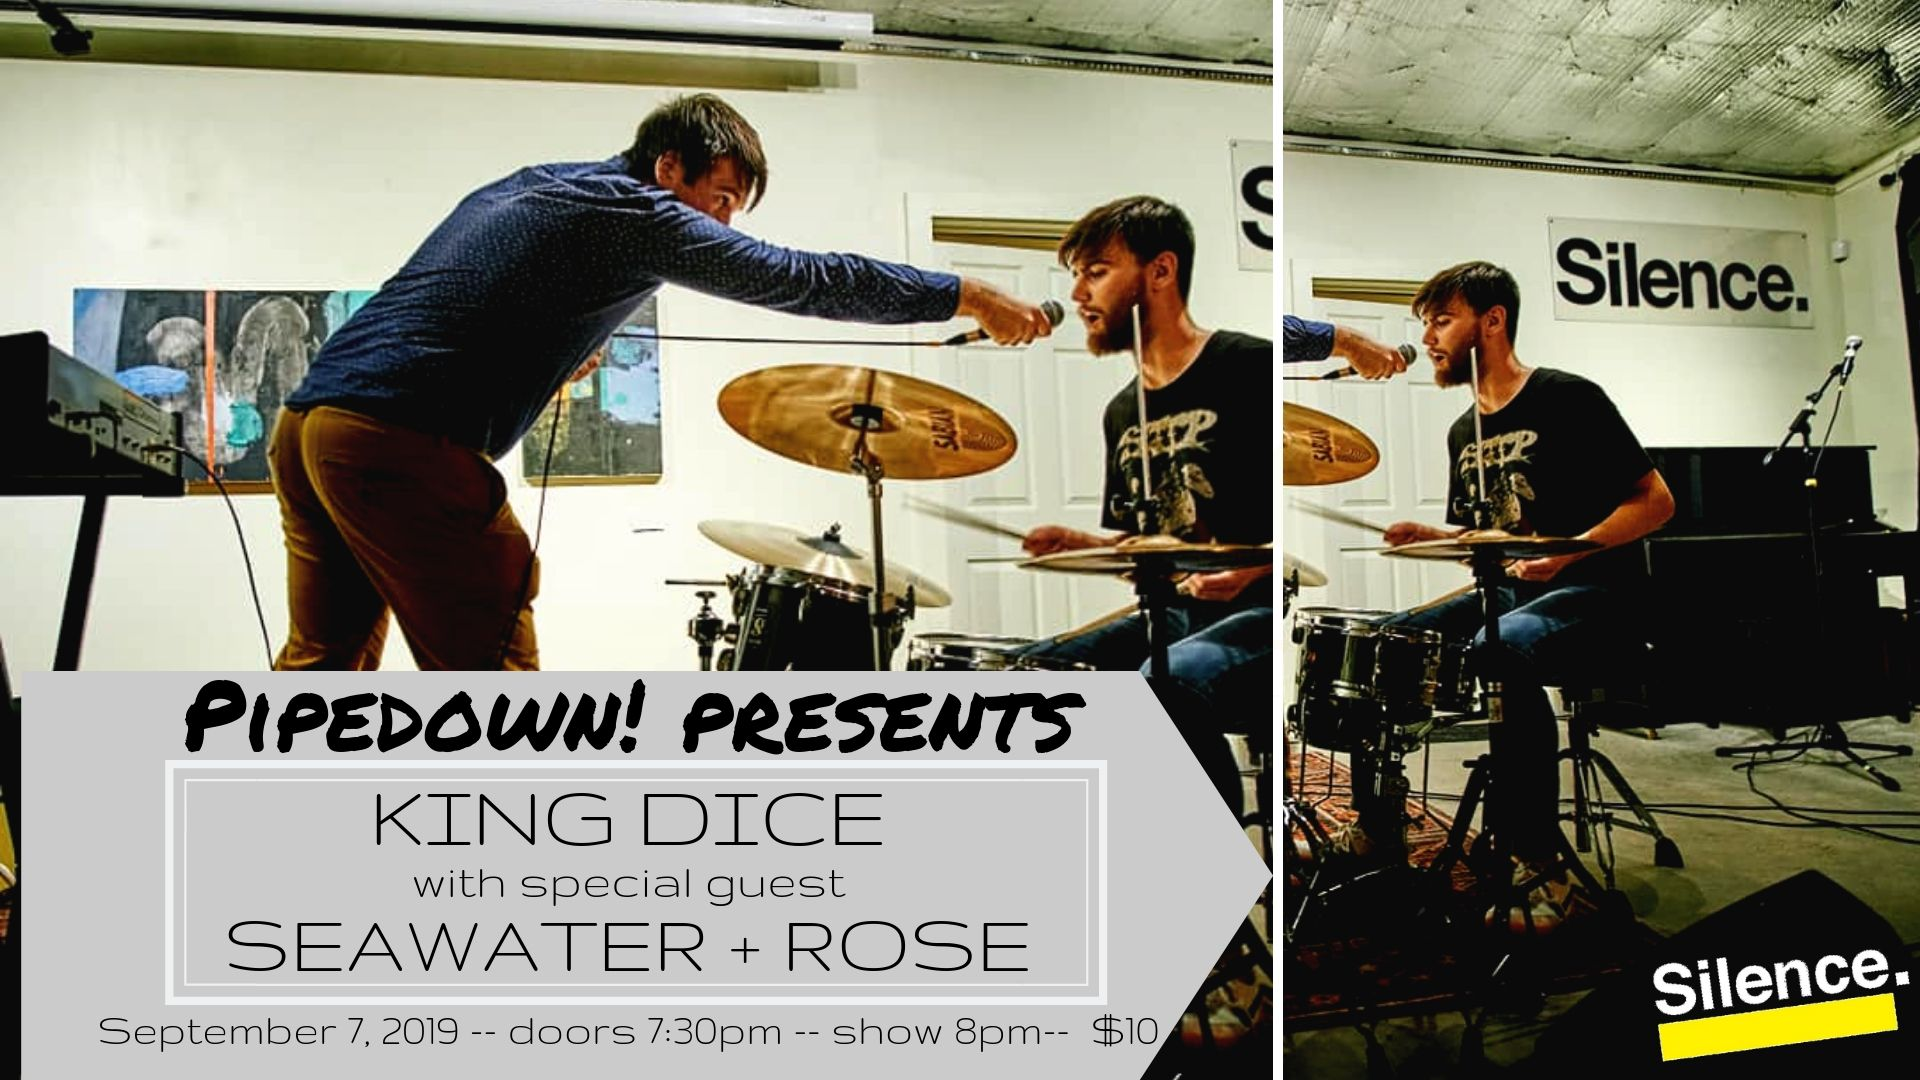 PP King Dice wsg Seawater+Rose